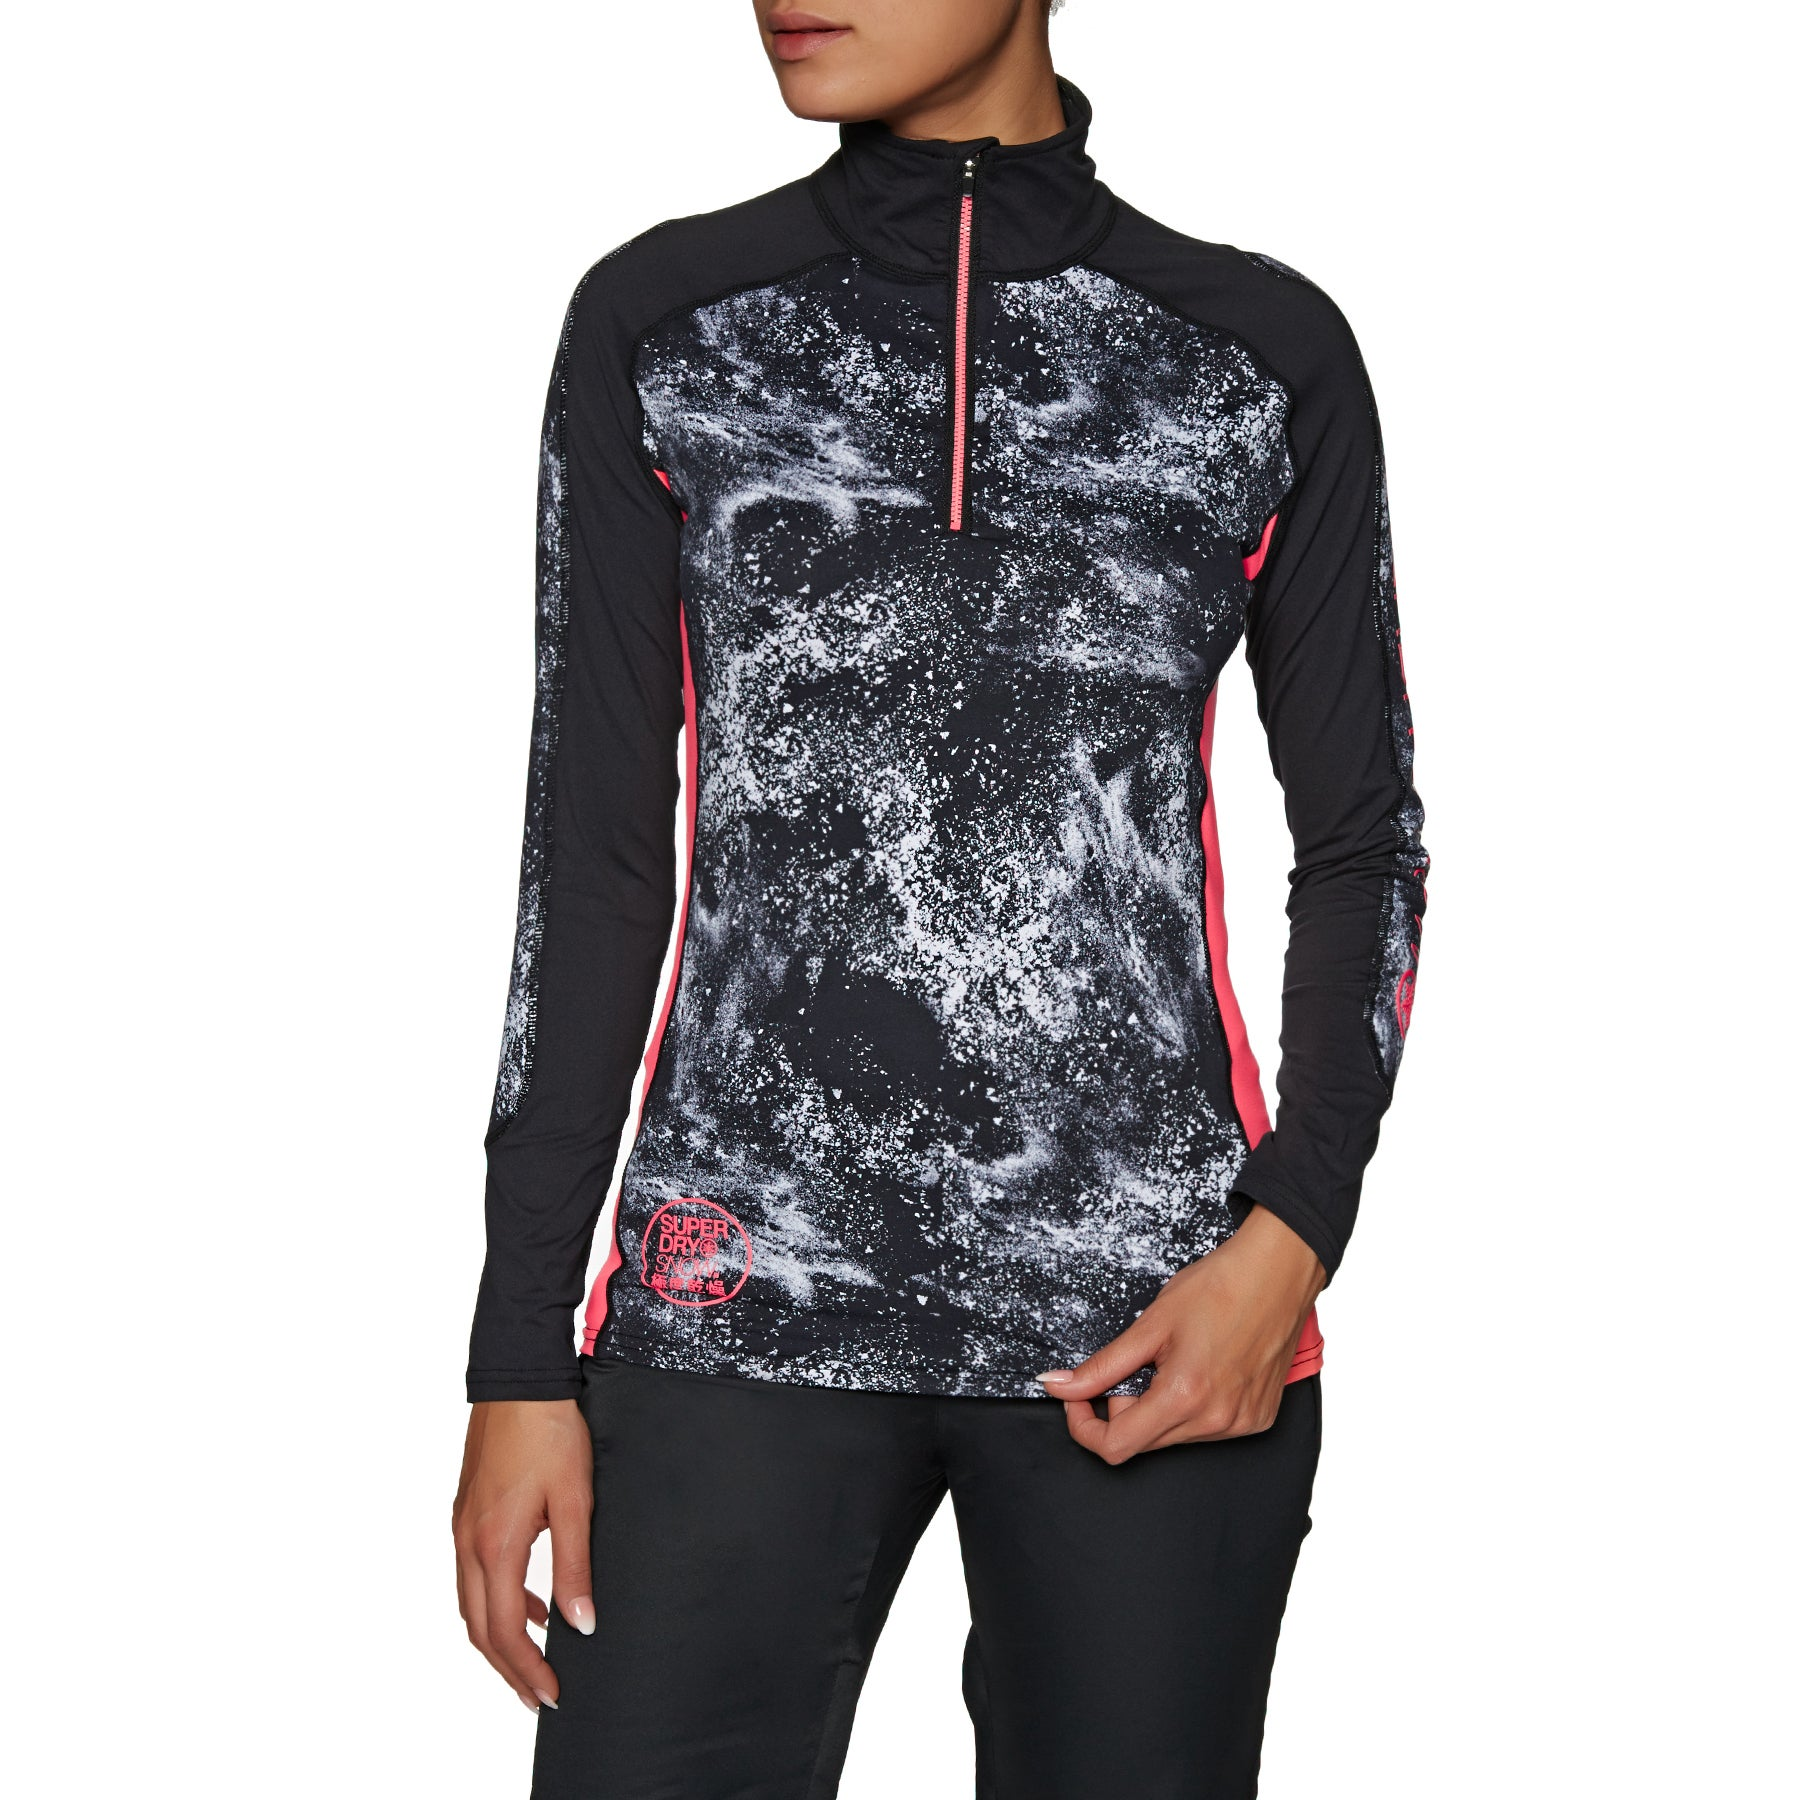 Superdry Carbon Baselayer Zip Top Womens Base Layer Top - Snow Spray